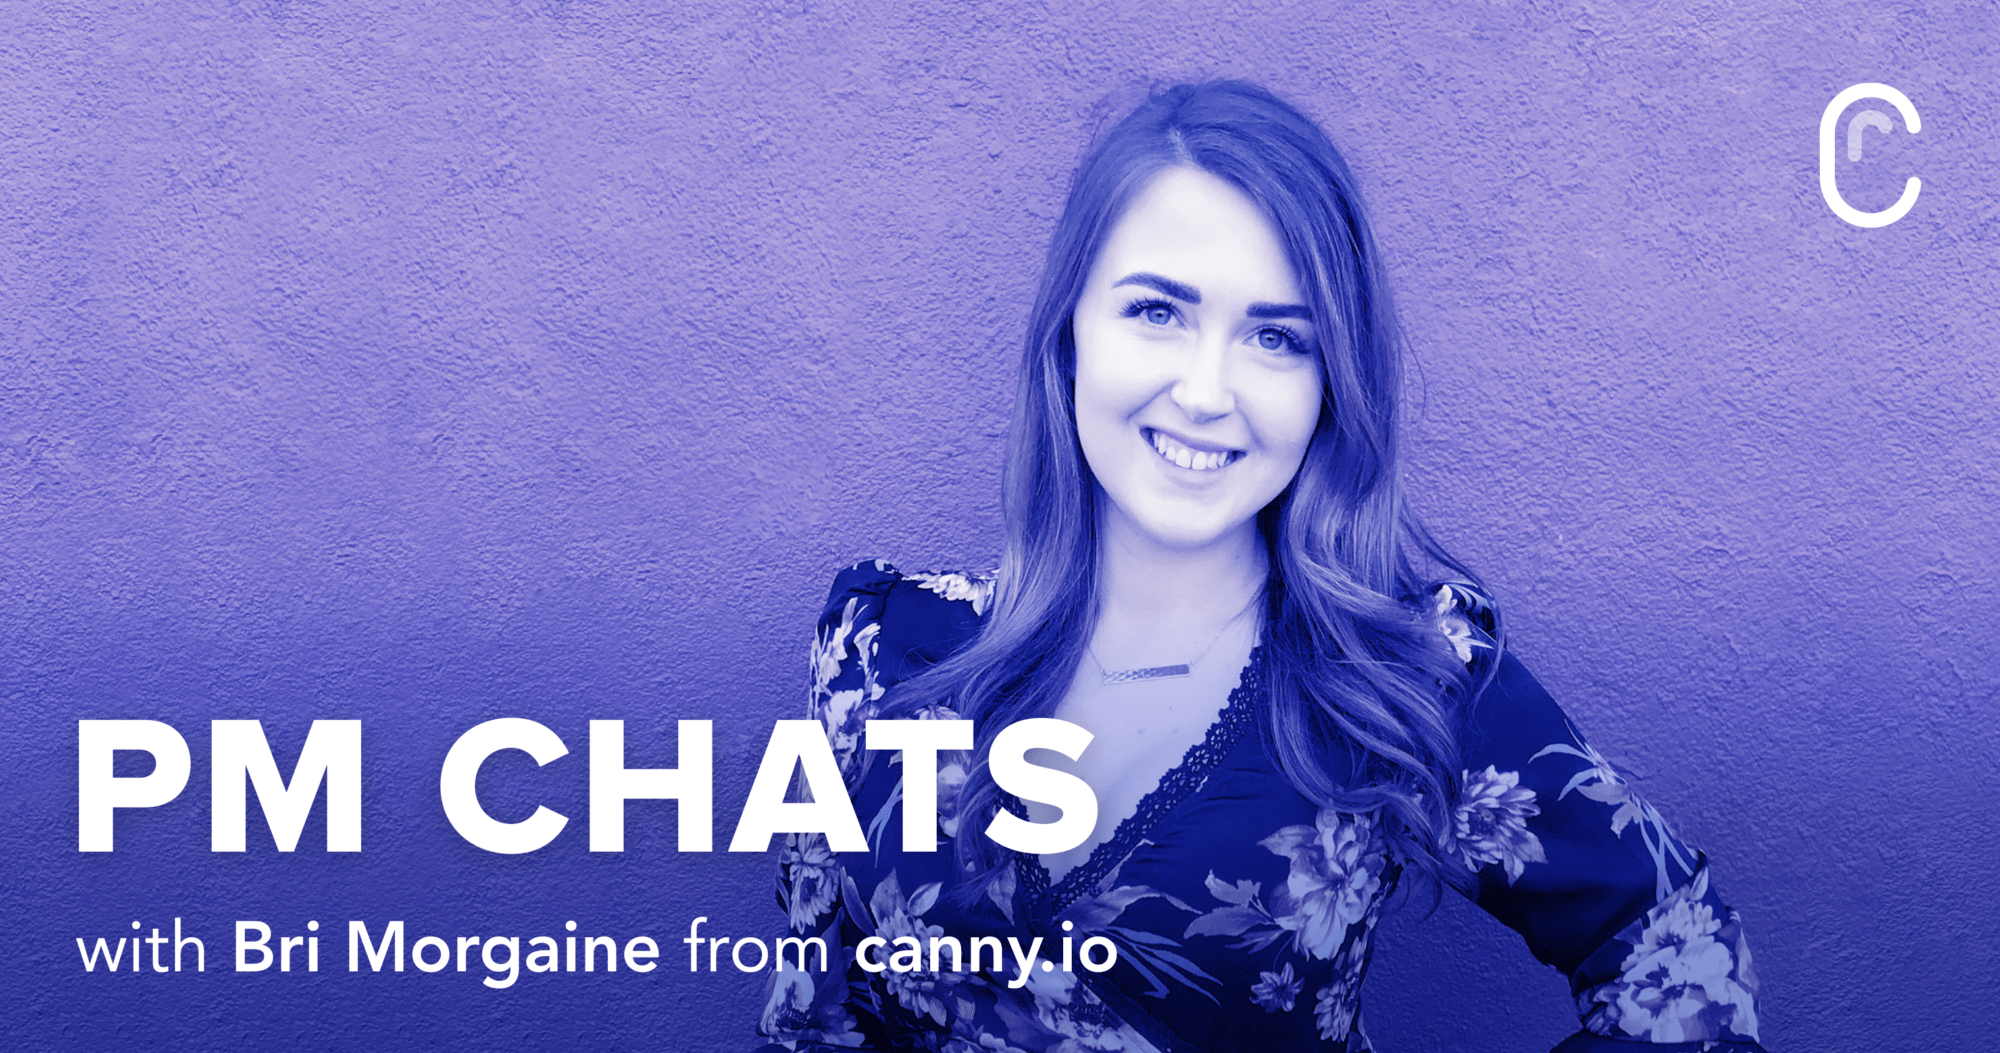 Introducing Product Manager Chats, a new podcast fromCanny